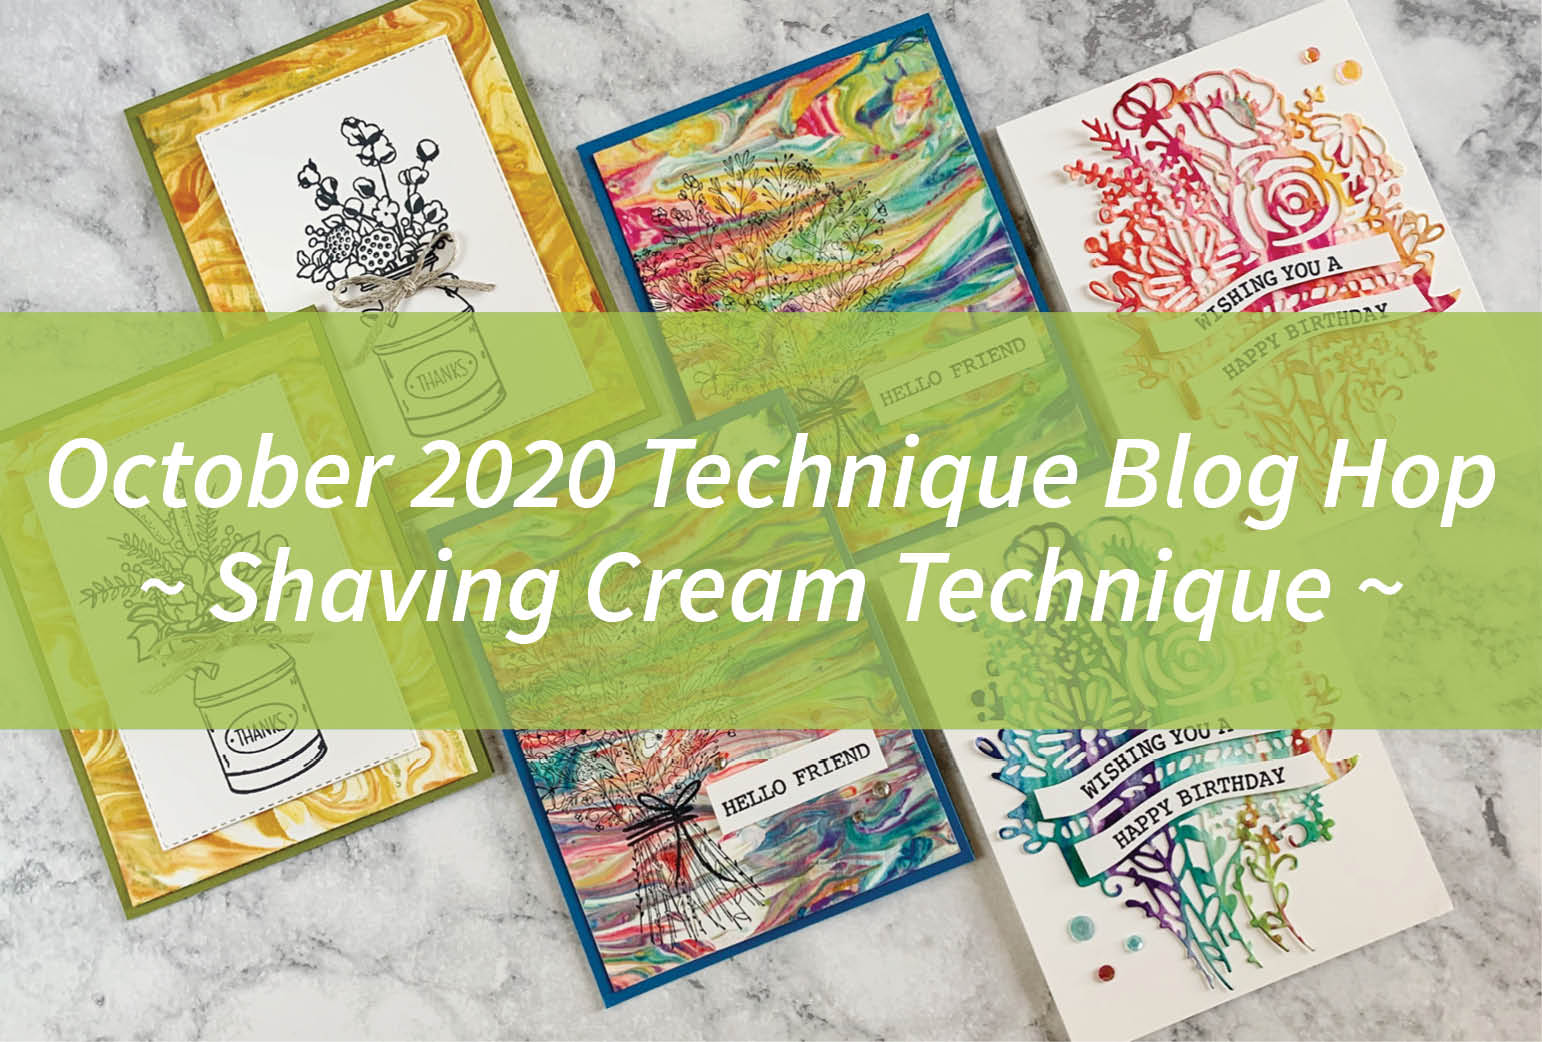 October 2020 Technique Blog Hop – Shaving Cream Technique